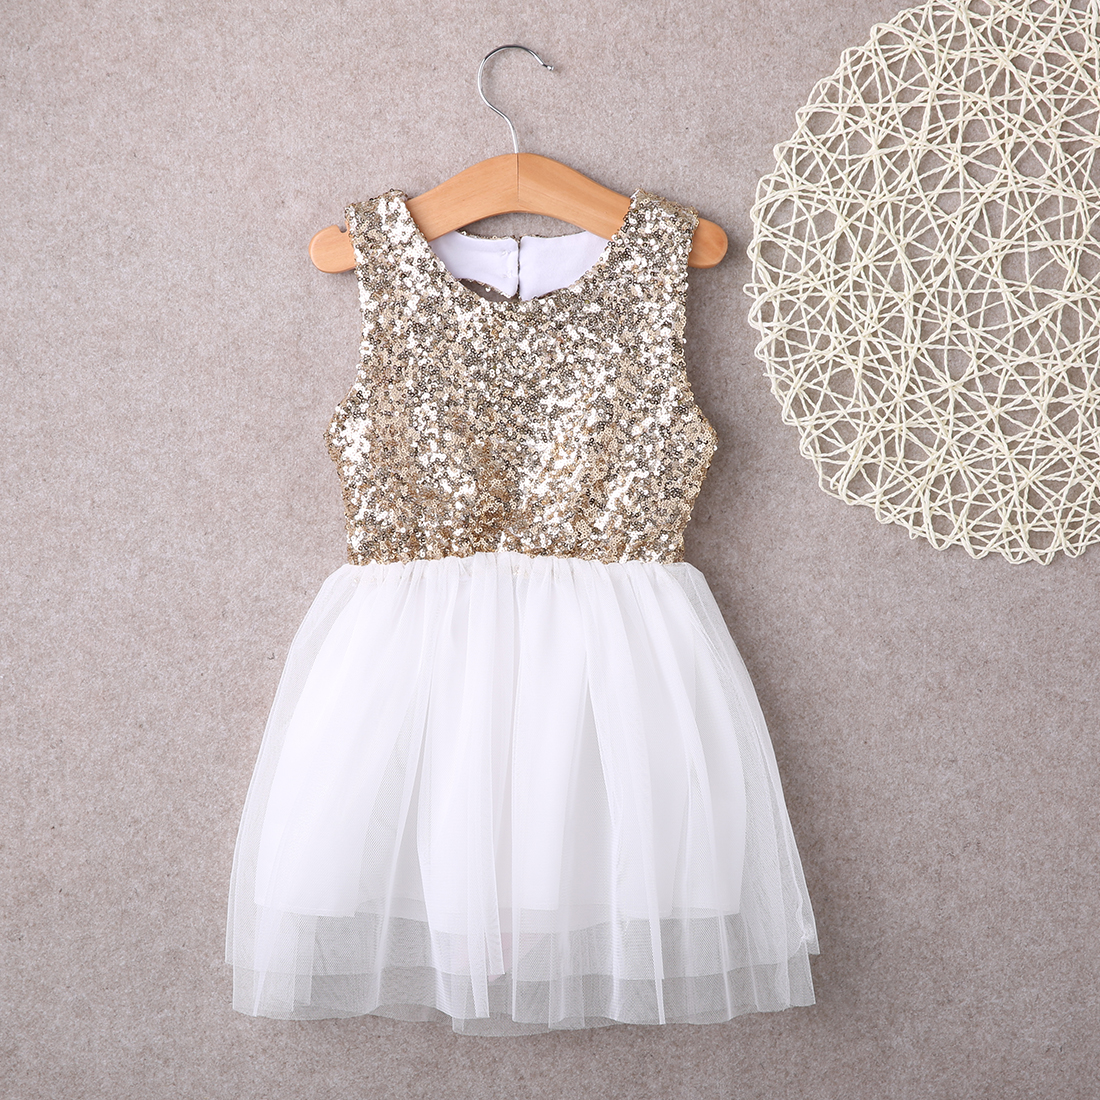 summer dress 2017 wholesale sequins dress baby flower girl dress party gown dresses backless sleeveless sundress unini yun 2 7t girl dress baby kids summer flower cherry backless sundress girl cotton sleeveless princess beach casual dresses